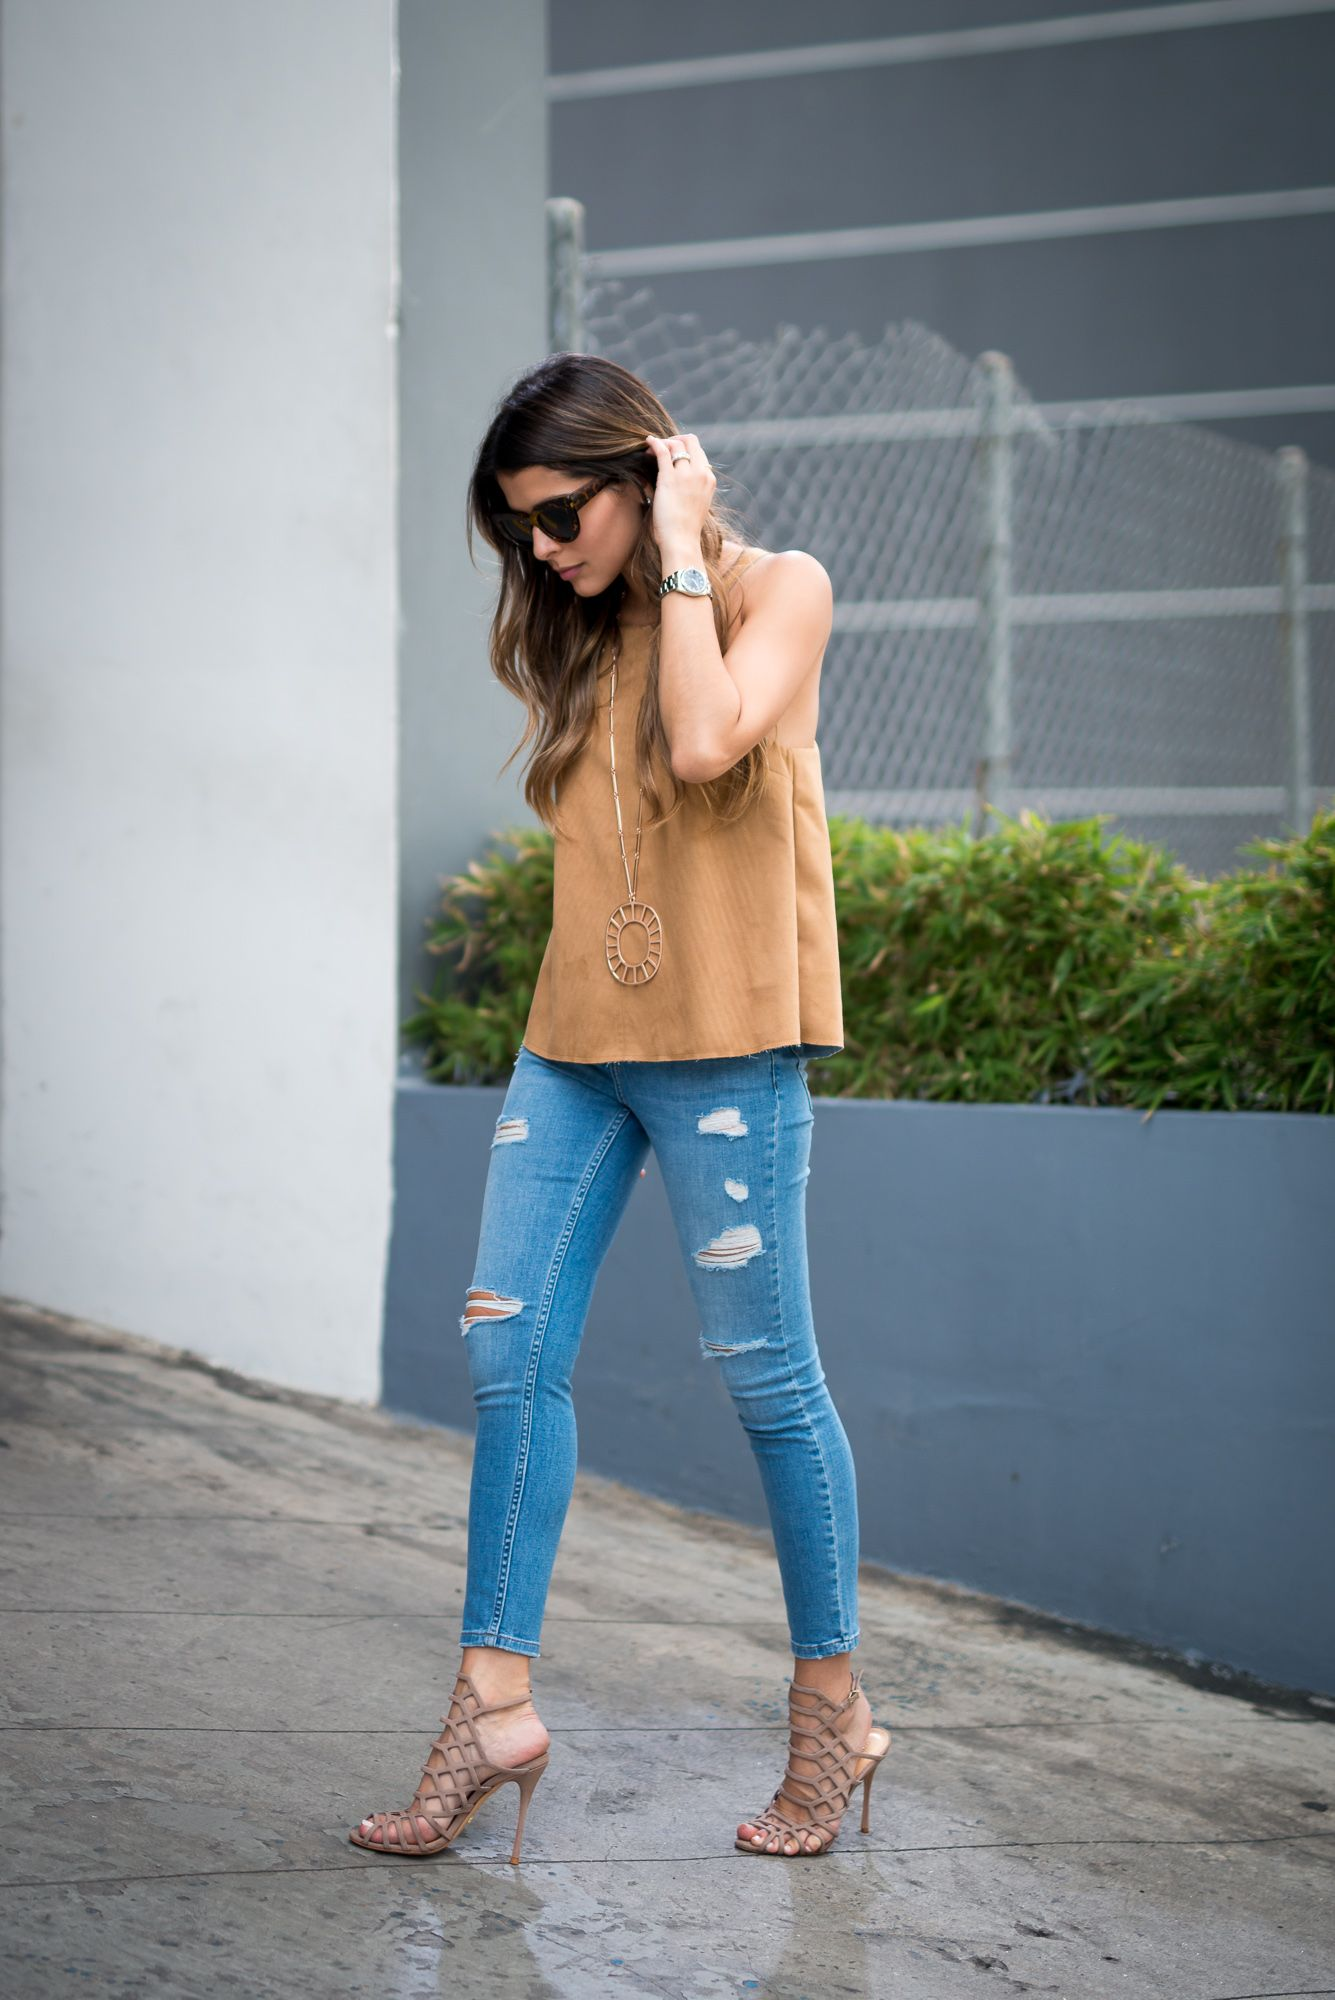 70 S Suede THE GIRL FROM PANAMA Pinterest